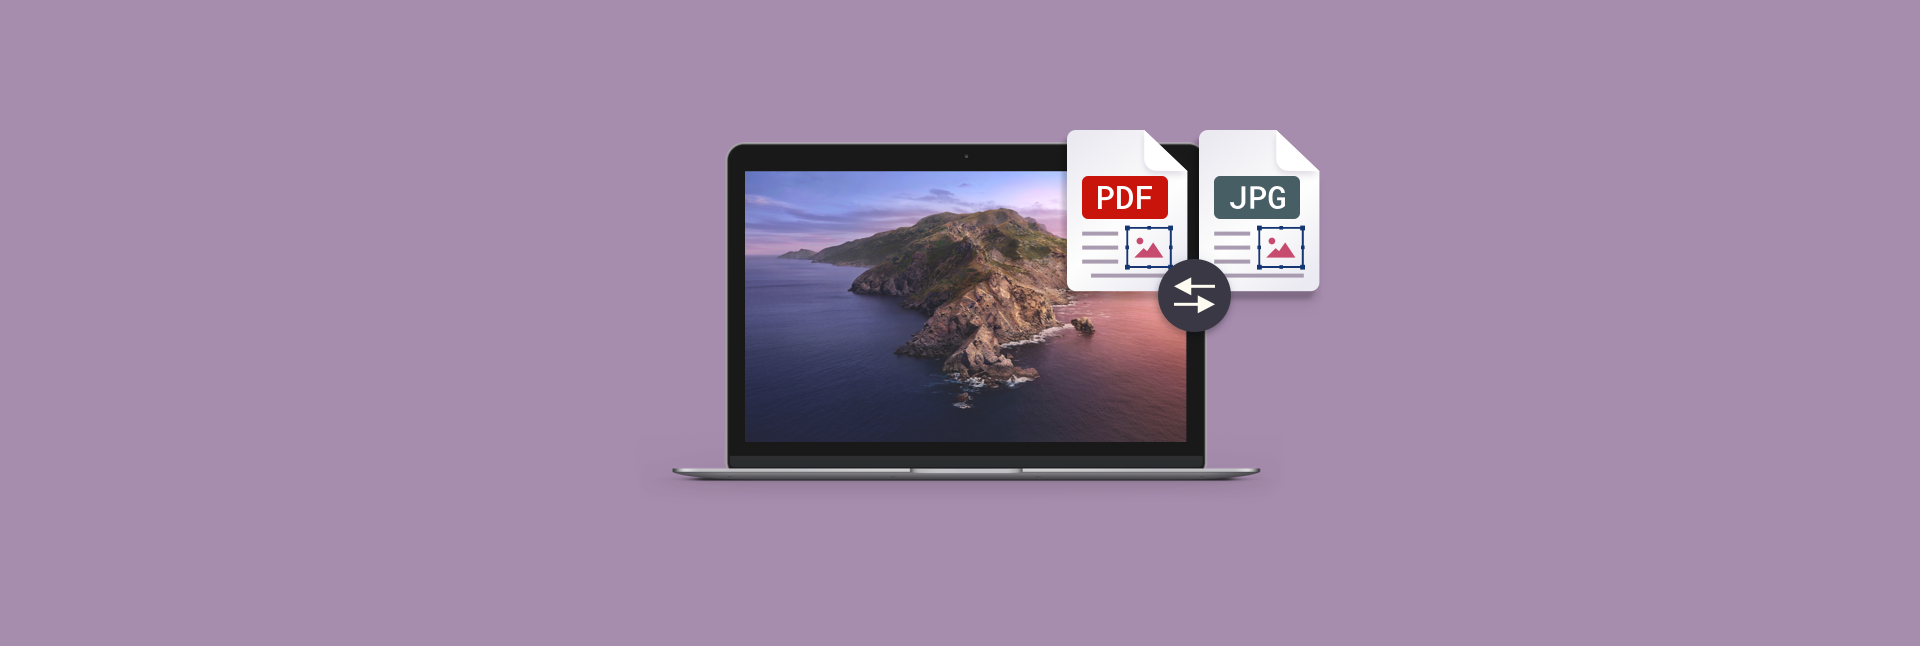 How To Convert Pdf To Jpg On A Mac